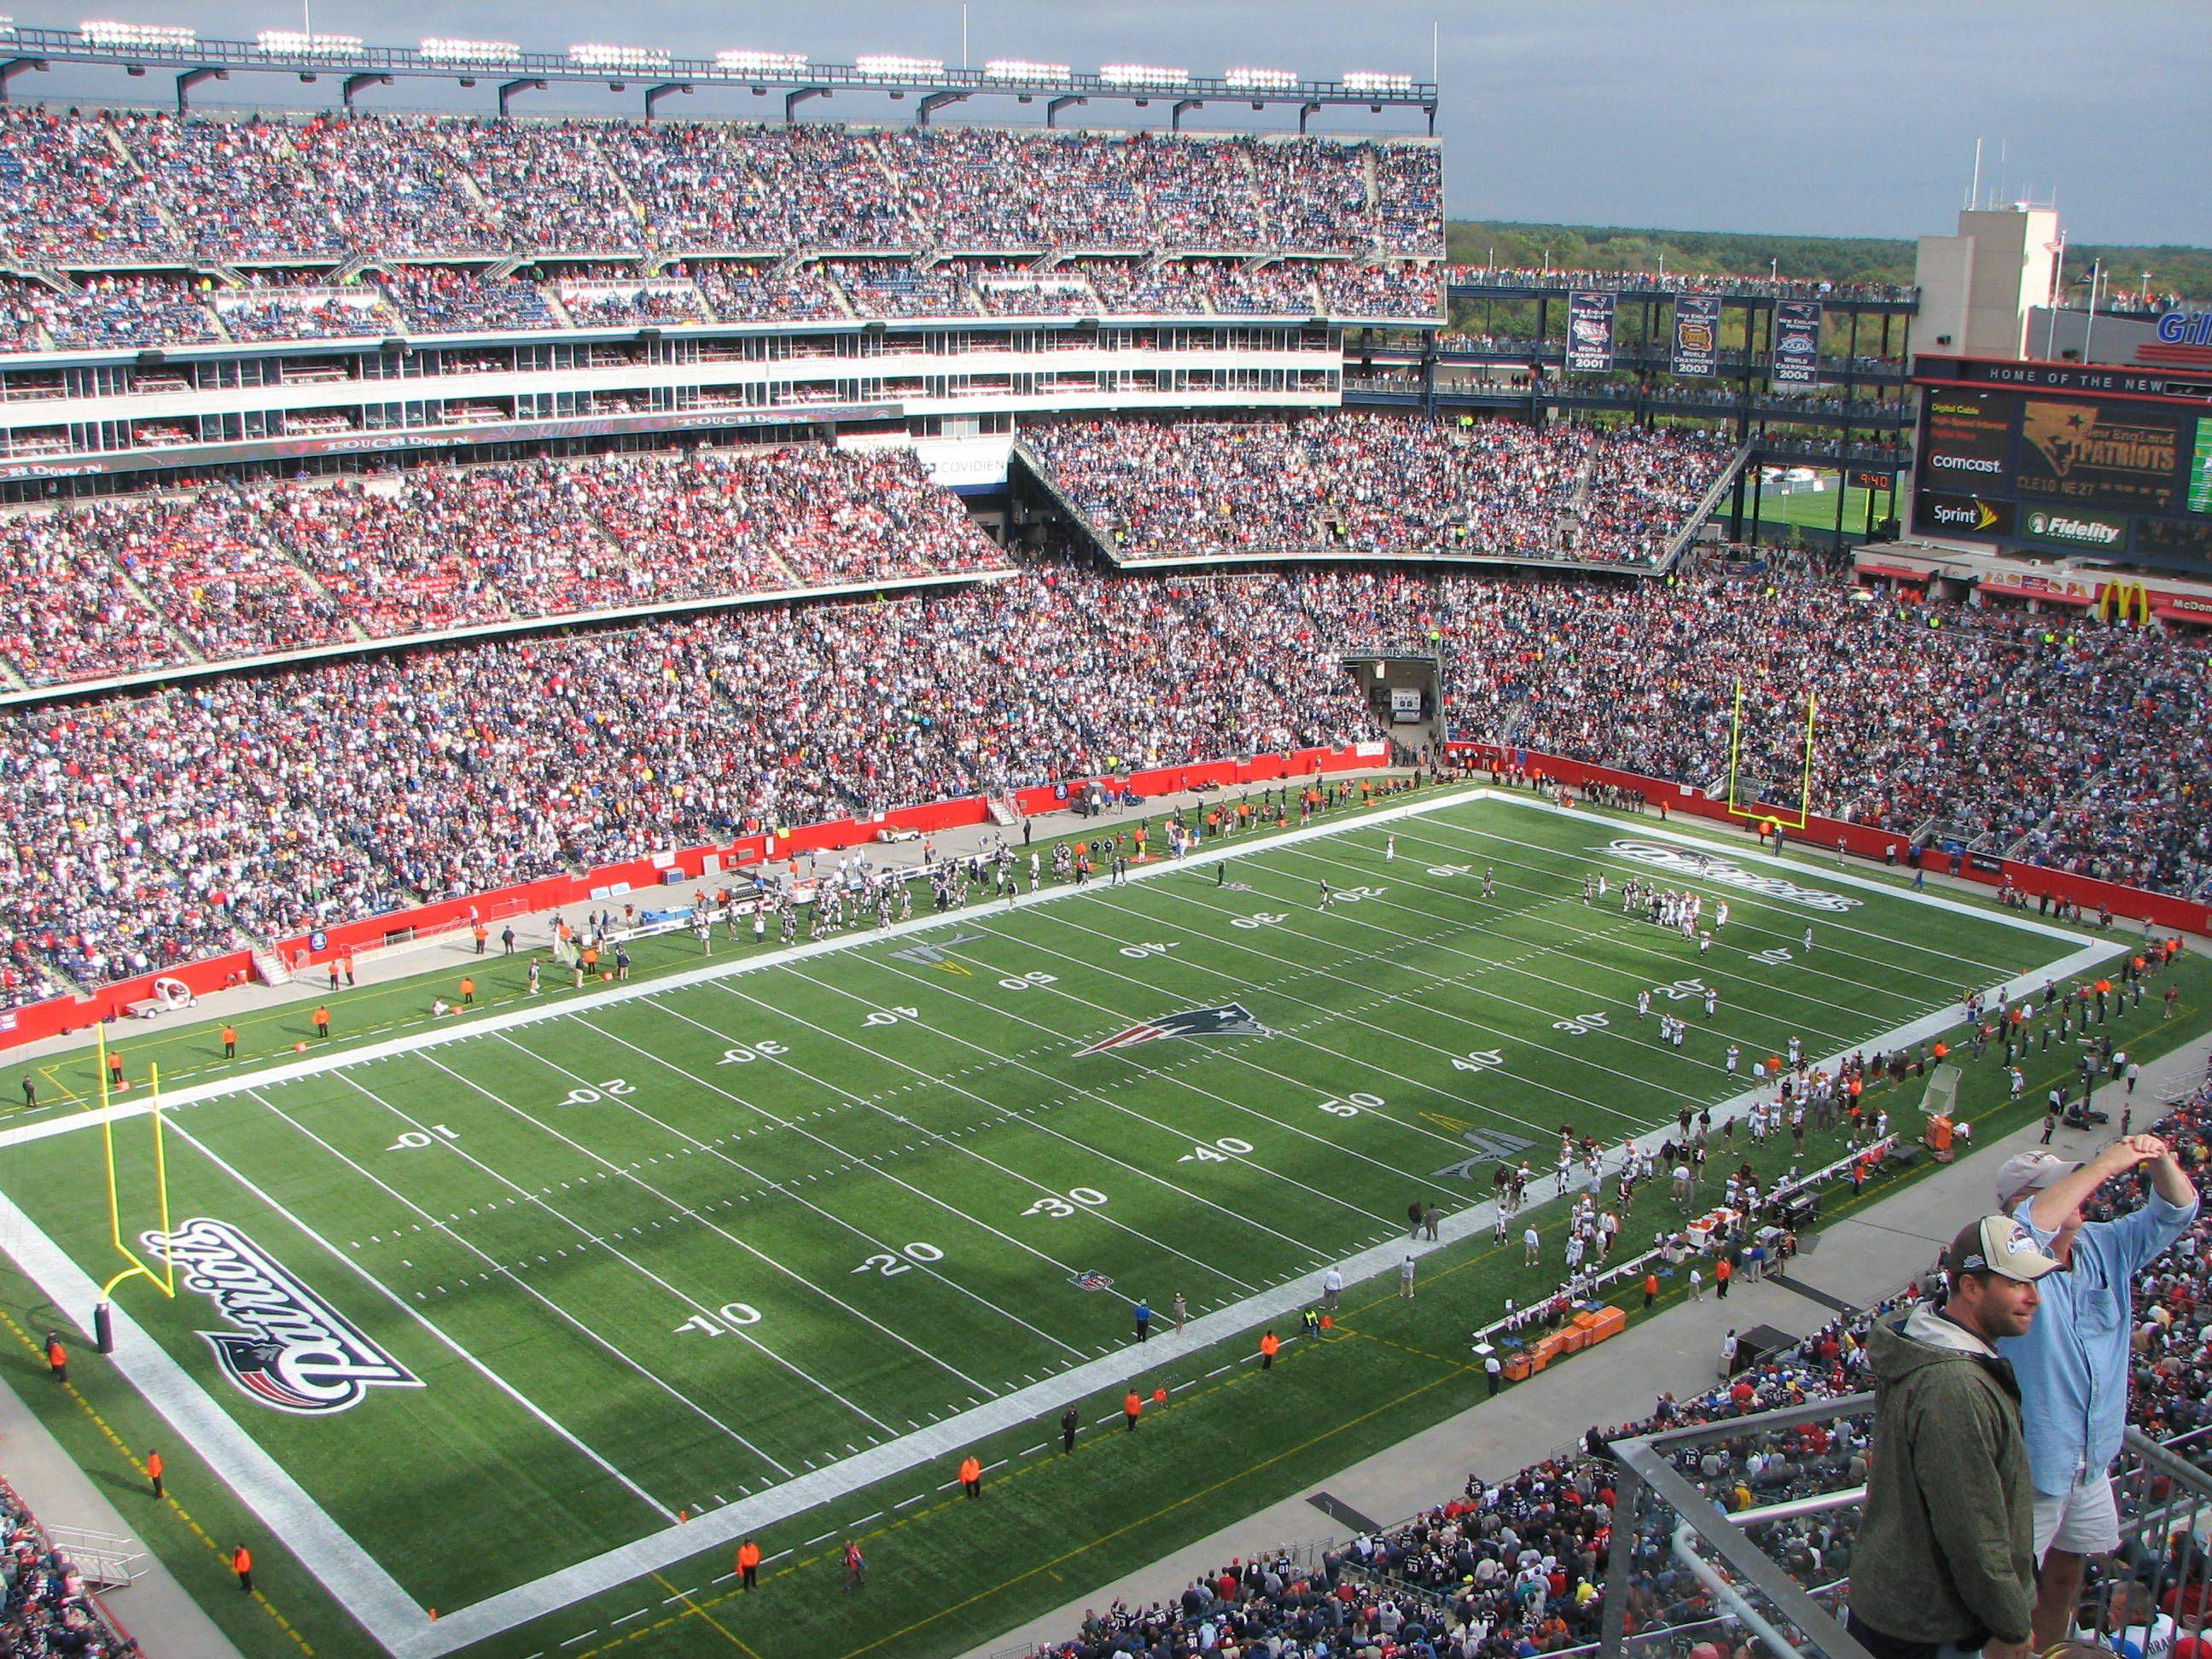 777eae9165d Gillette Stadium - Foxboro, Massachusetts home of the New England Patriots.  Boston